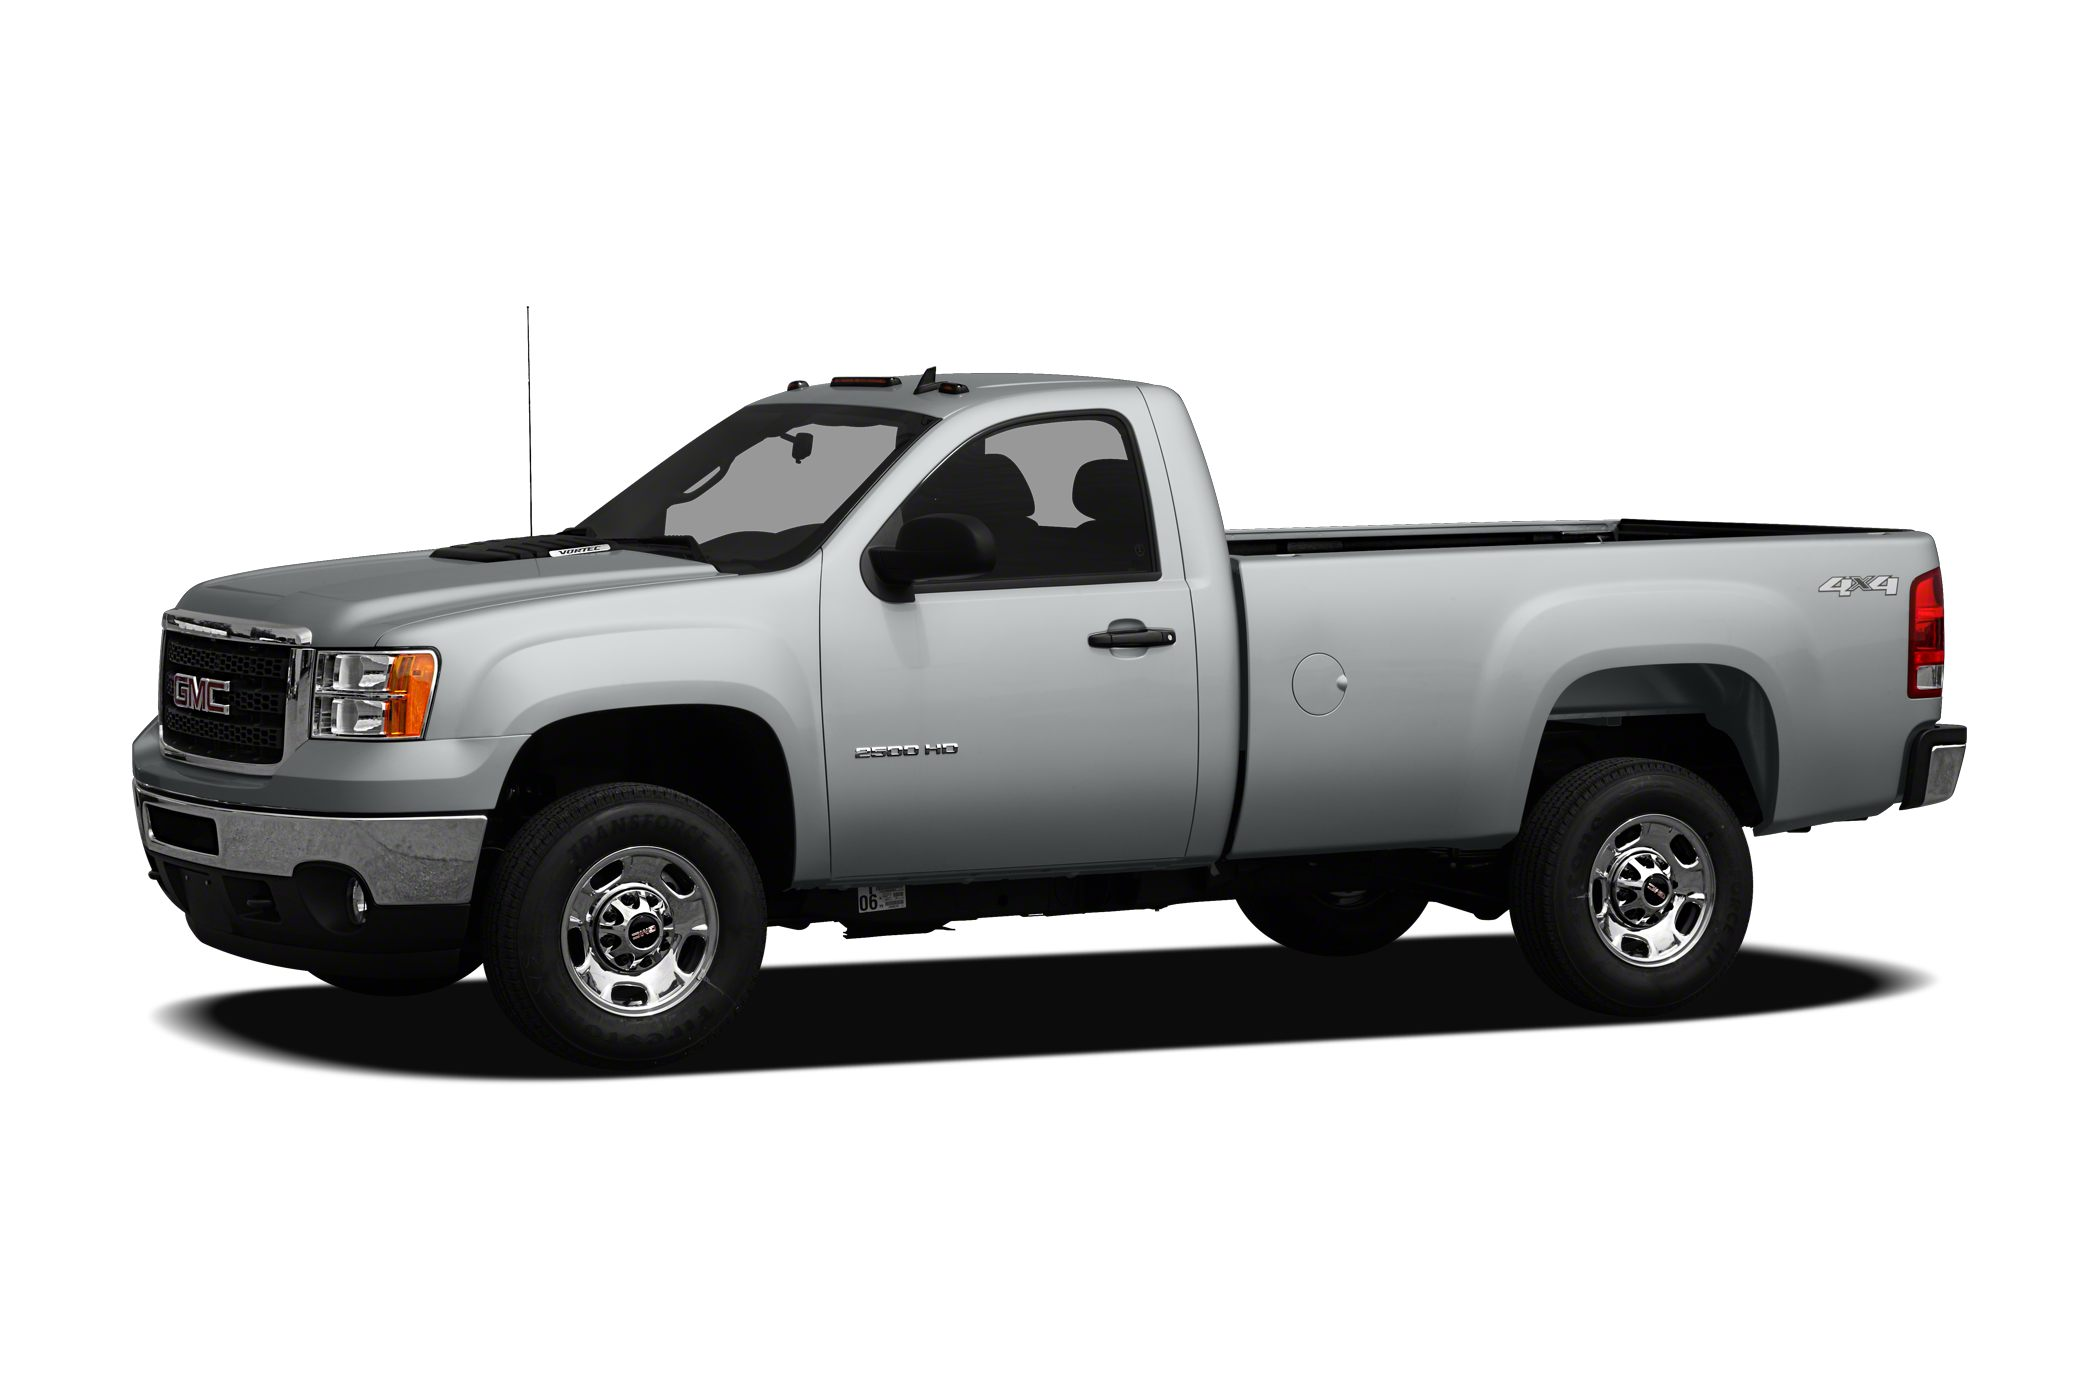 2011 GMC Sierra 2500 SLE Crew Cab Pickup for sale in Alexandria for $33,980 with 94,960 miles.